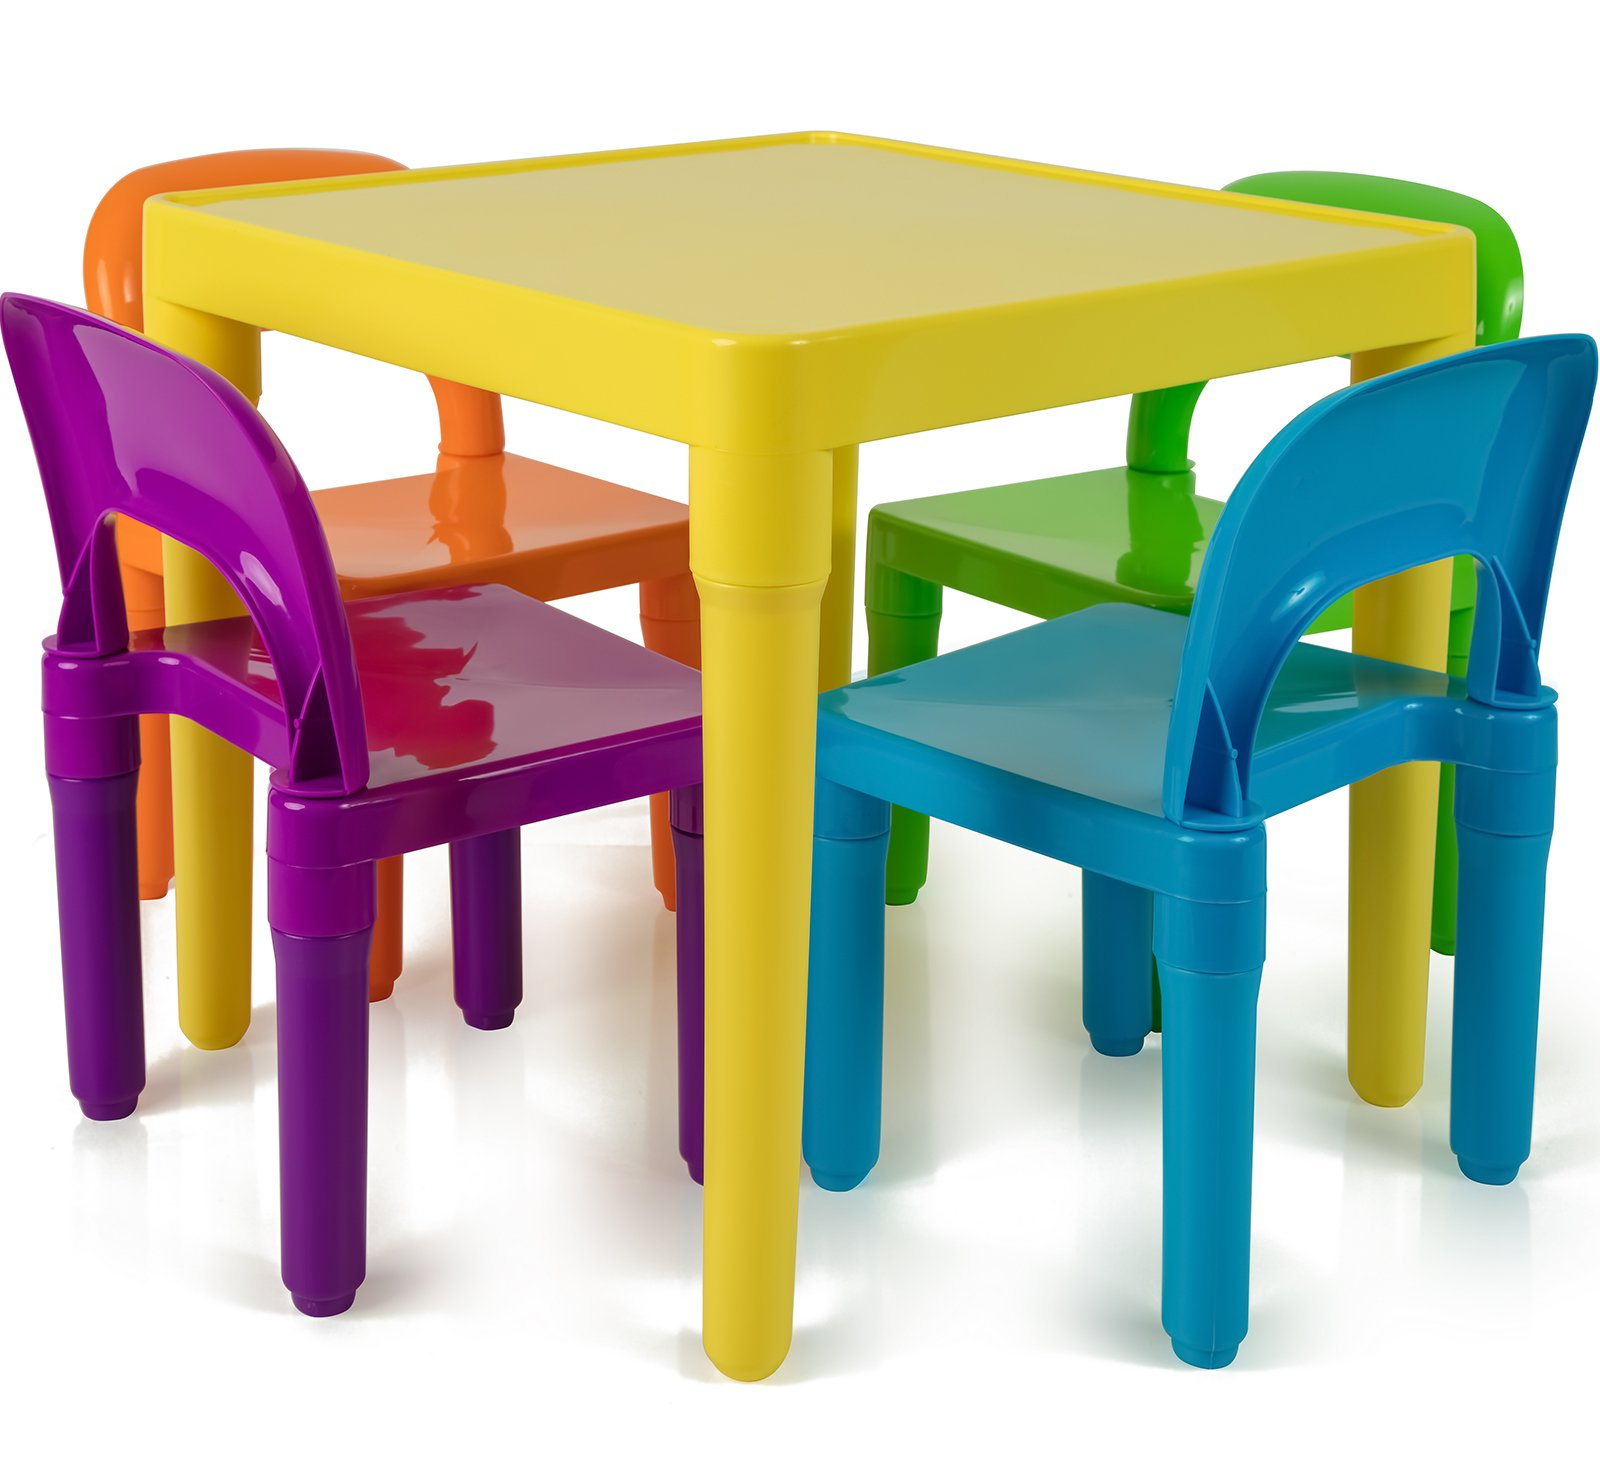 Amazoncom OxGord Kids Plastic Table and Chairs